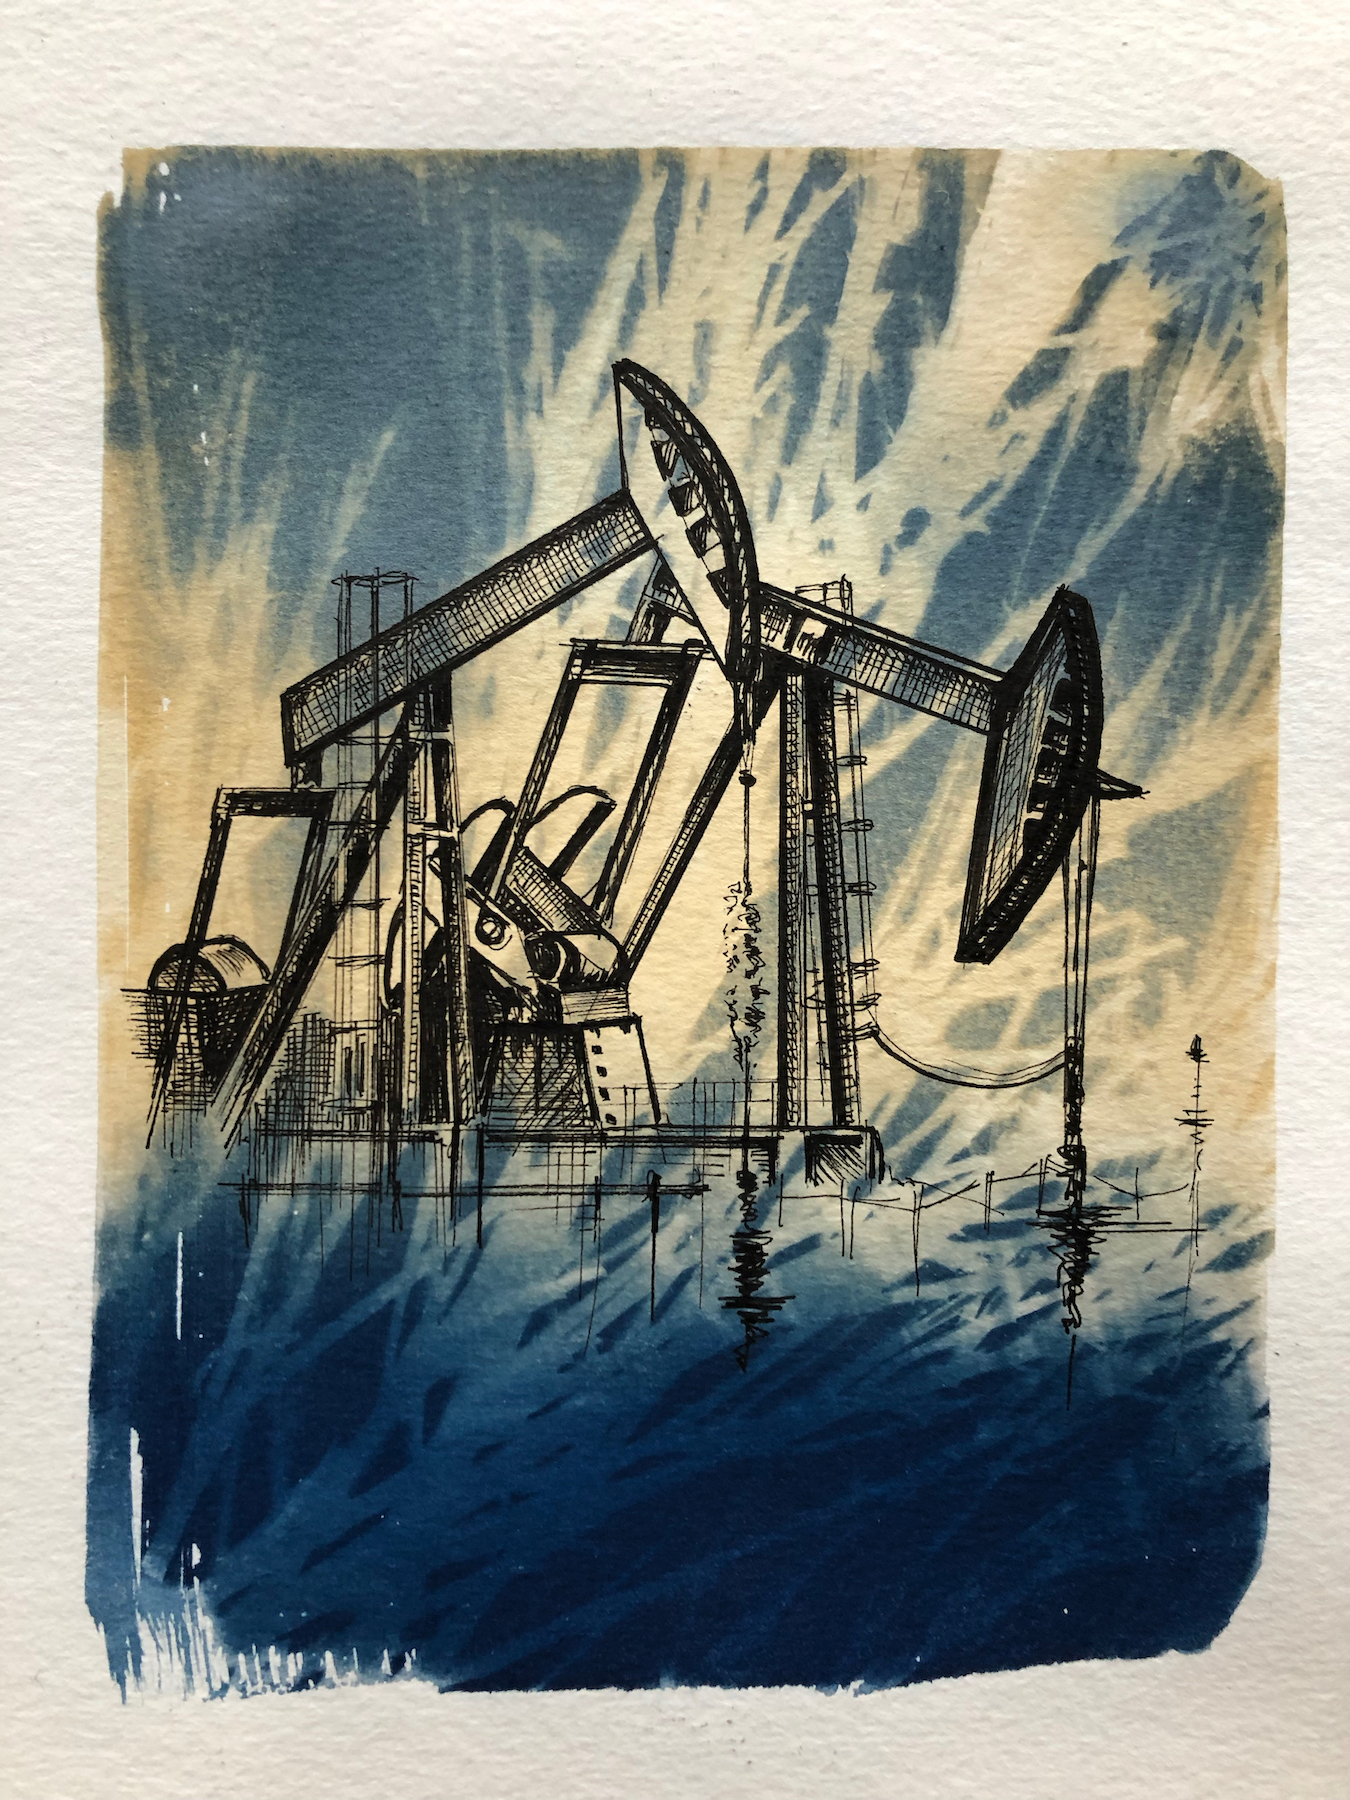 Marie Craig,  Entanglement 5 (fracking),  pen and ink on toned cyanotype photograph, 6 x 8 inches.